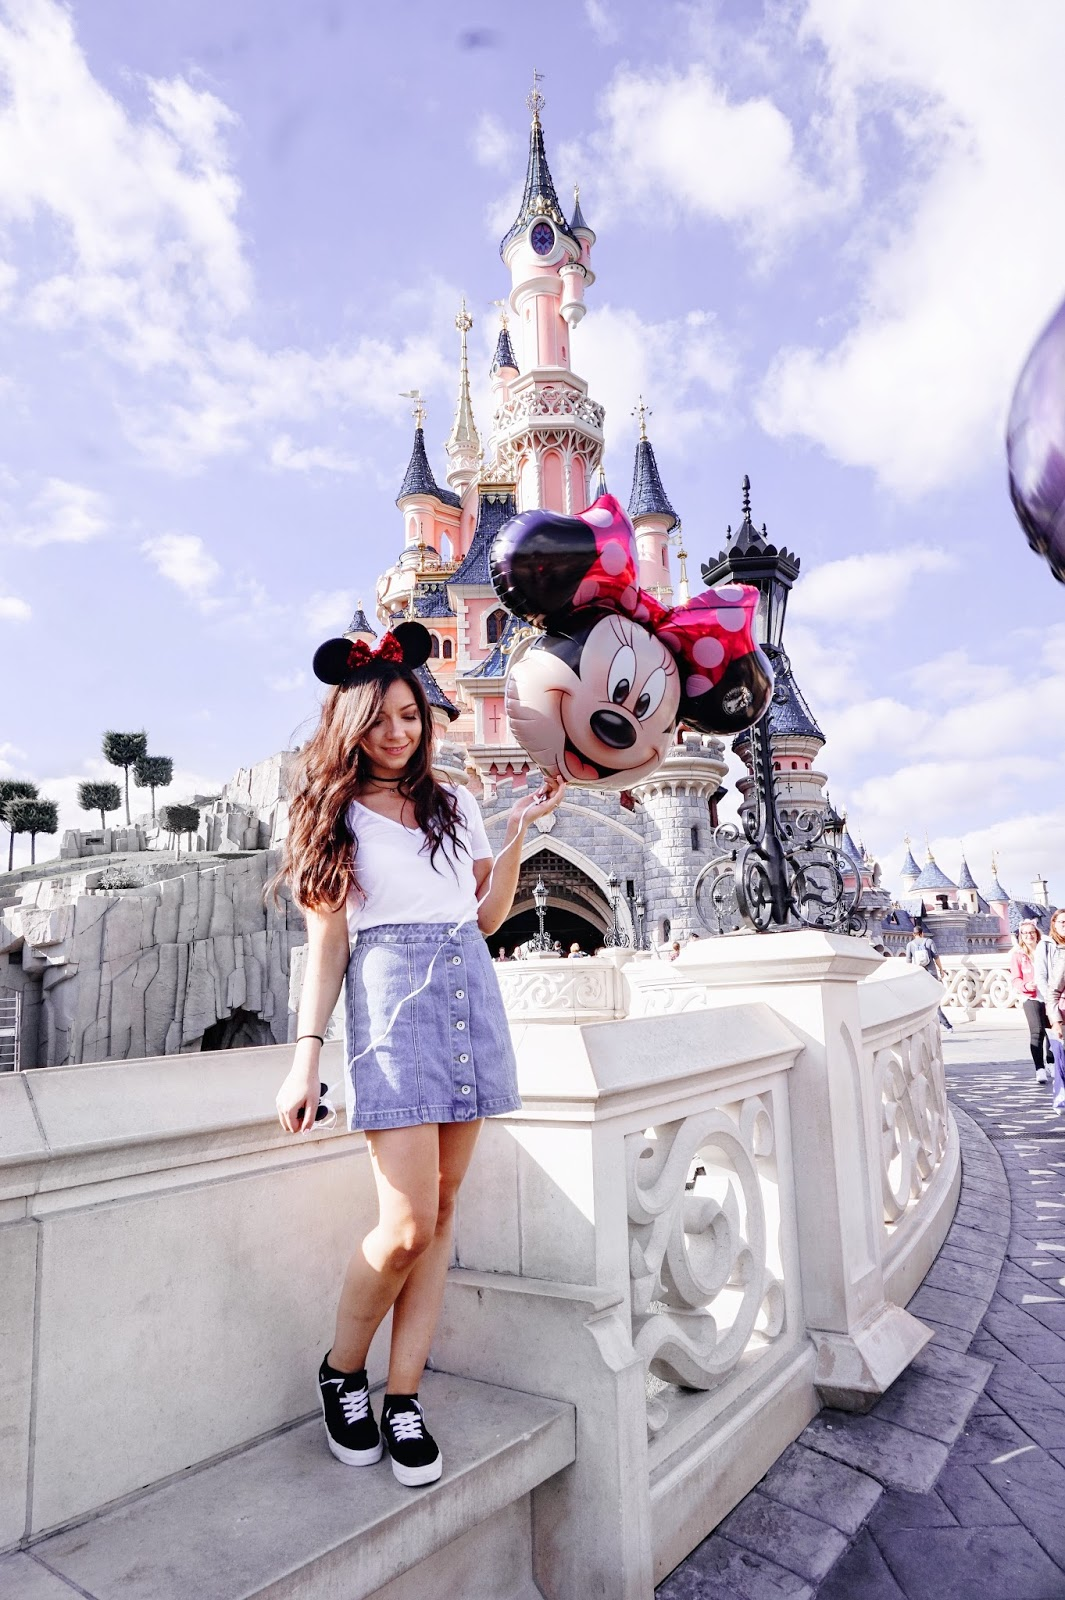 The Most Instagrammable Places At Disneyland Paris, Disneyland Paris, Travel, Disneyland Paris Photos, disneyland paris photo ideas,